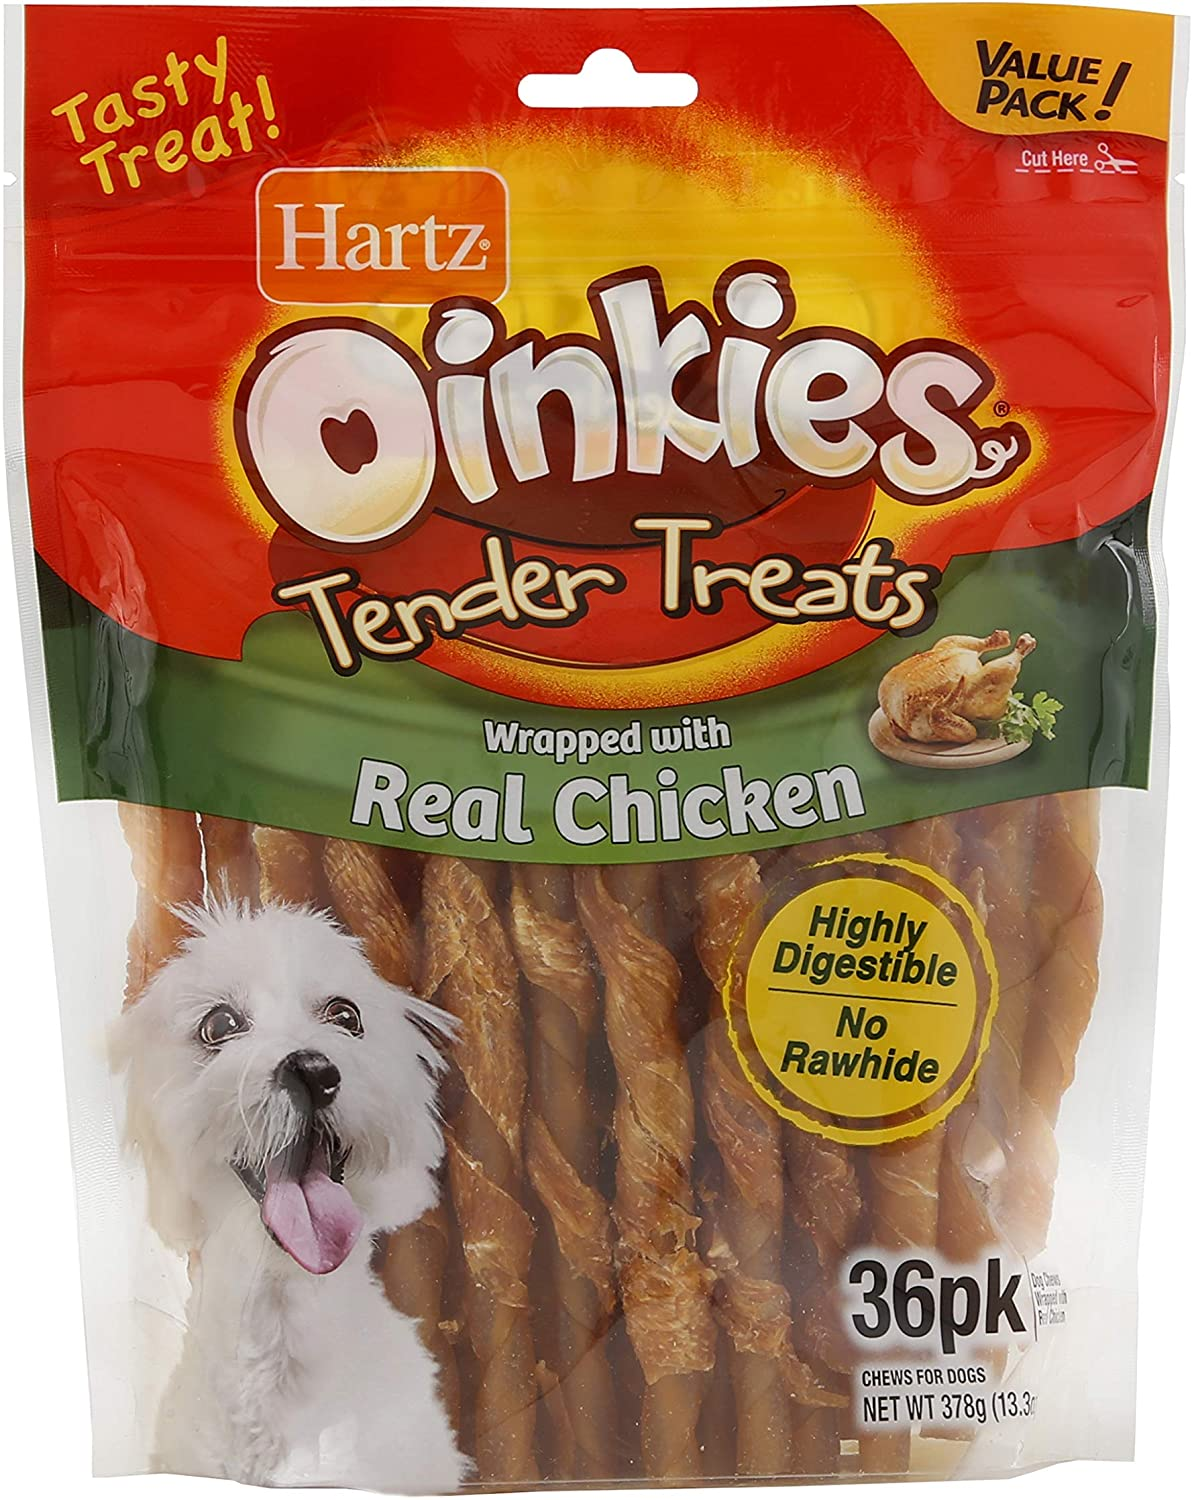 Hartz Oinkies Rawhide-Free Tender Treats Wrapped with Chicken Dog Treats Chews, Various Sizes, Highly Digestible, No Artificial Flavors, Perfect for Smaller and Senior Dogs